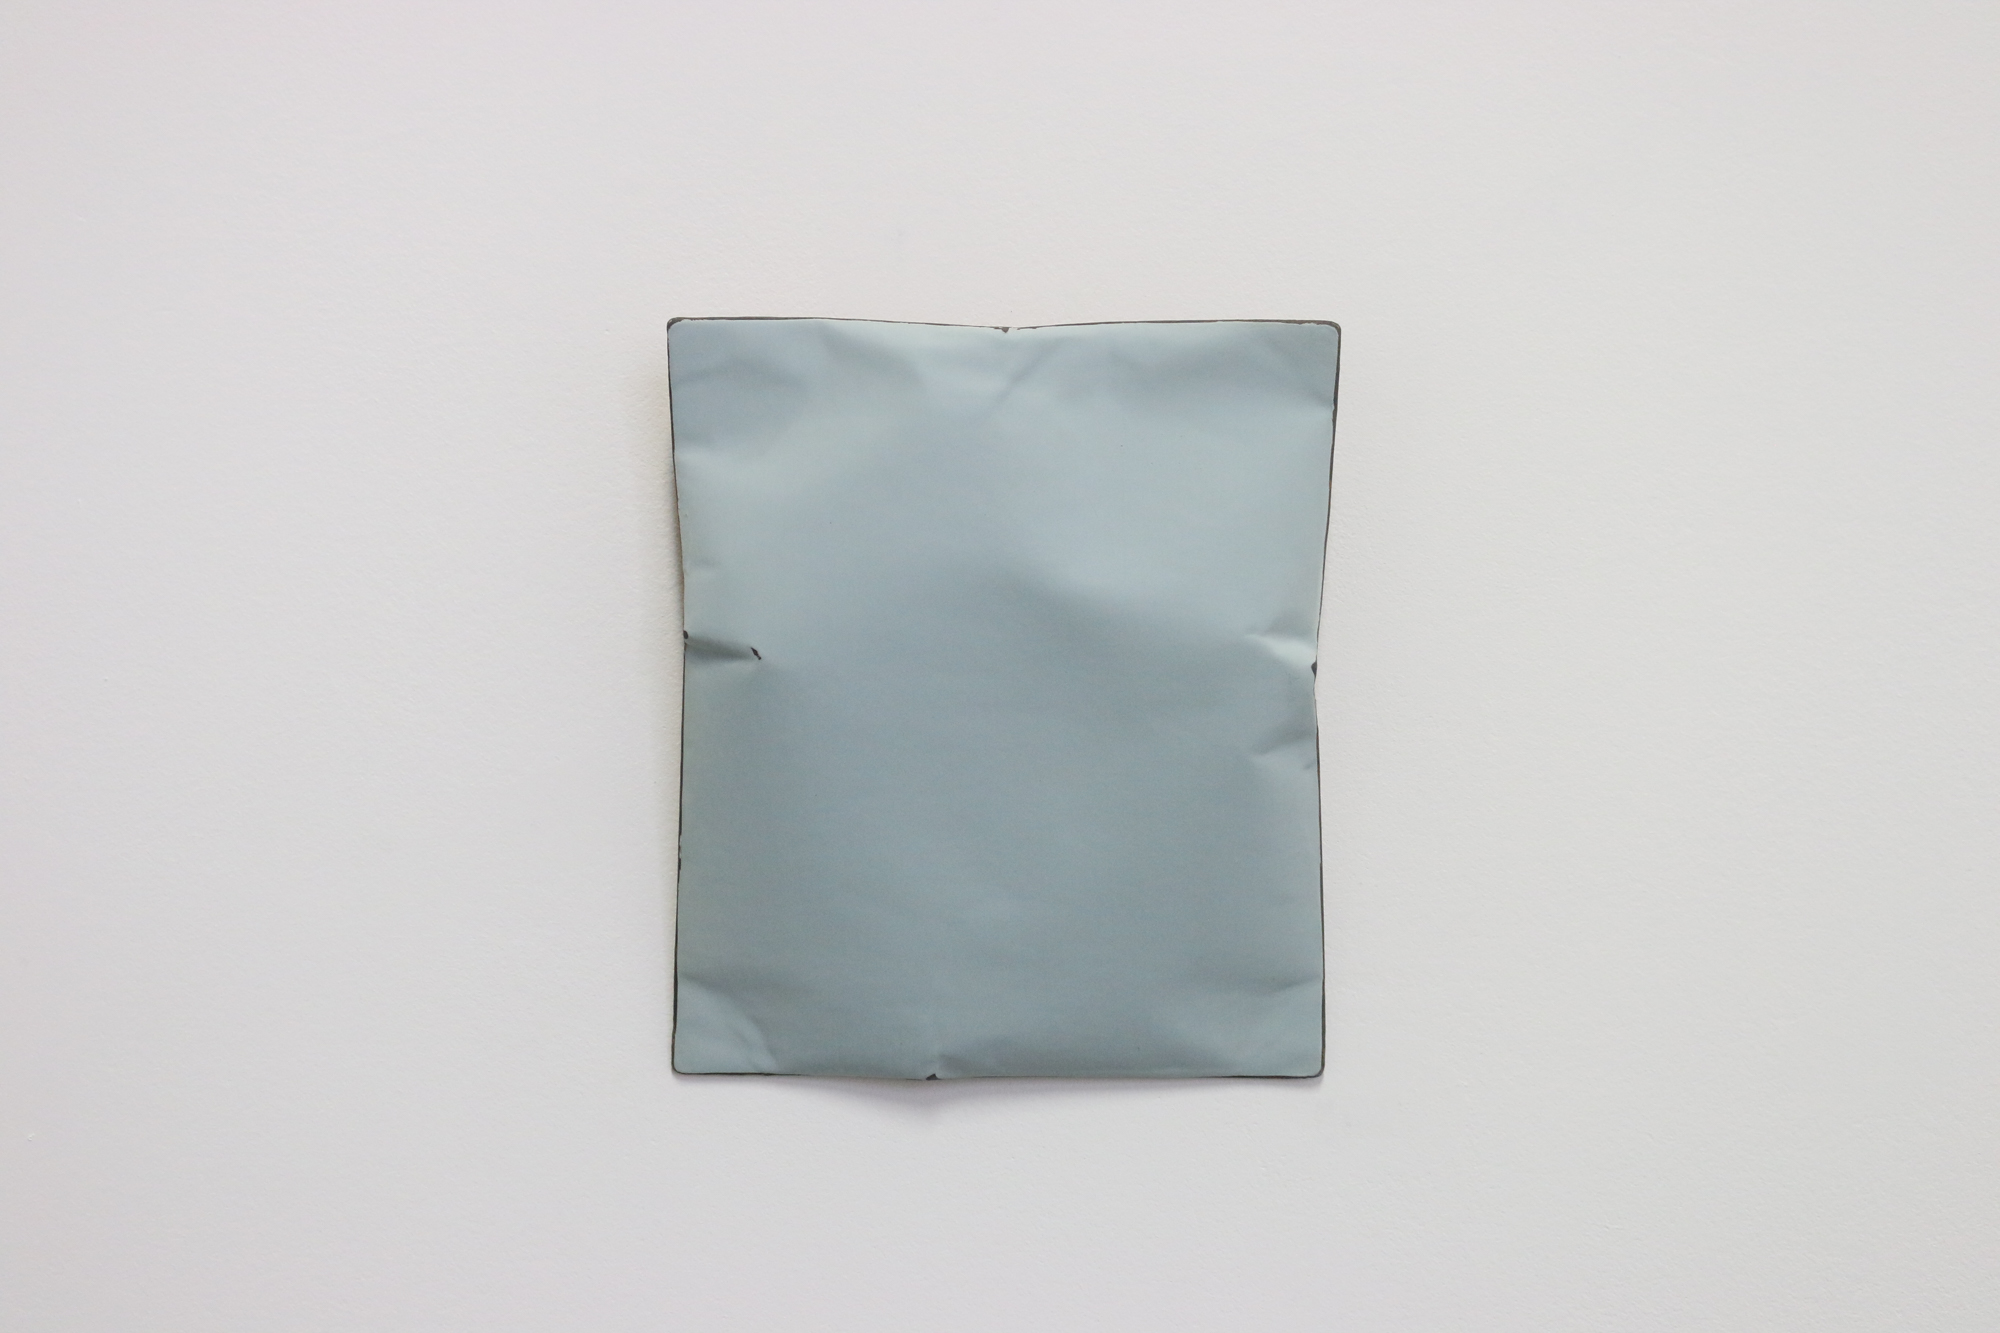 Johan De Wit, Untitled, 2019, Acrylic, Marble, Resin on Paper, 25.5x22x6 cm, Affinity Art.jpg